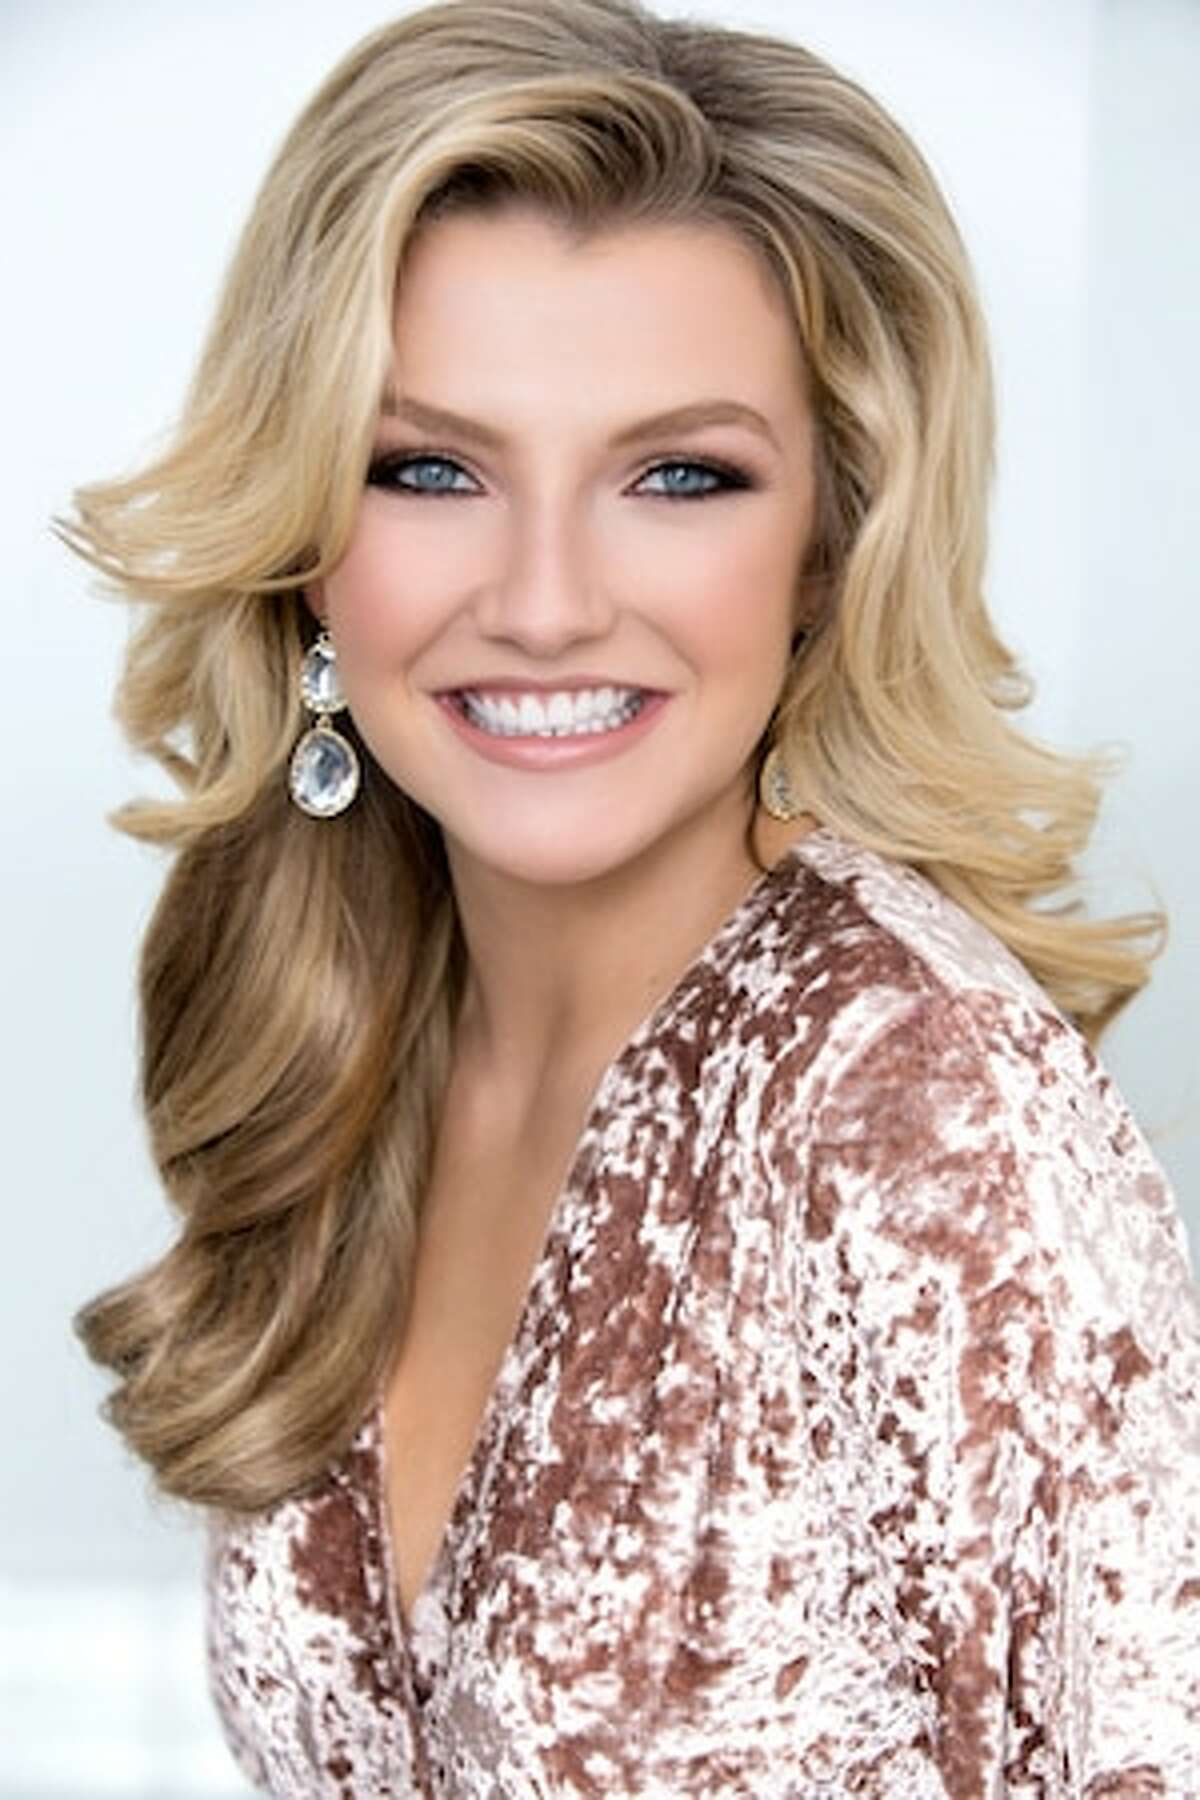 Emma Faye Rudkin founder of Aid the Silent. Rudkin became the first deaf woman to win Miss San Antonio, when she was crowned with the title in 2015. Rudkin won the honor again in 2017, and has been named 40 Women under 40 Woman of the Year.